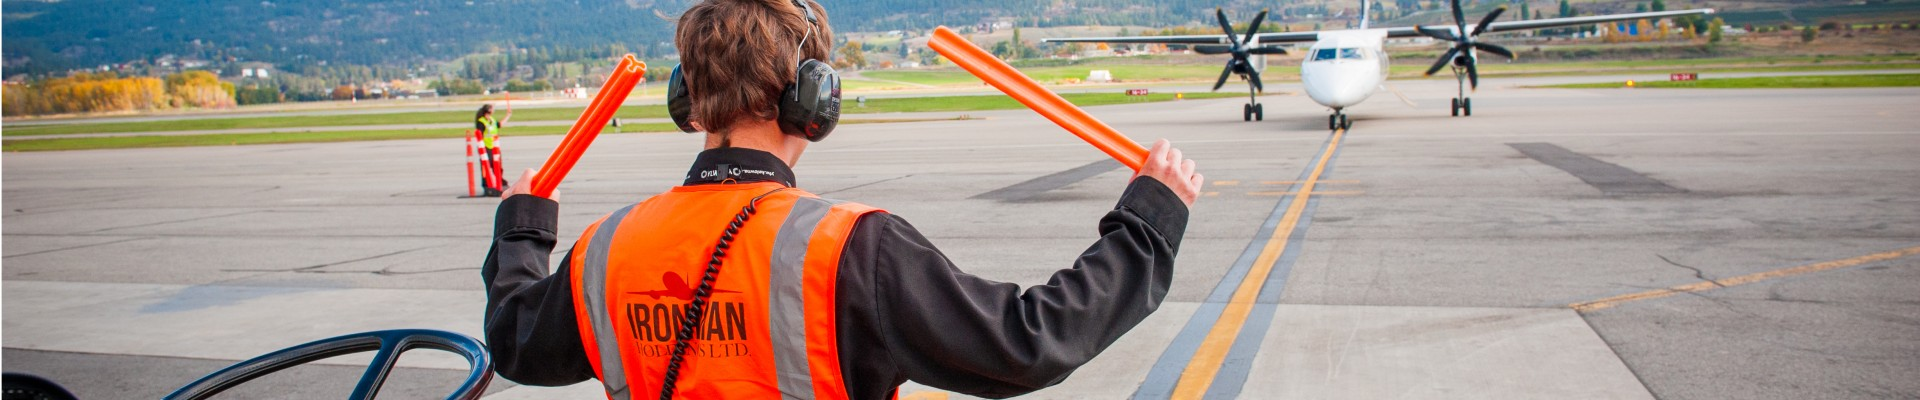 Airfield worker guides in a plane on a sunny day